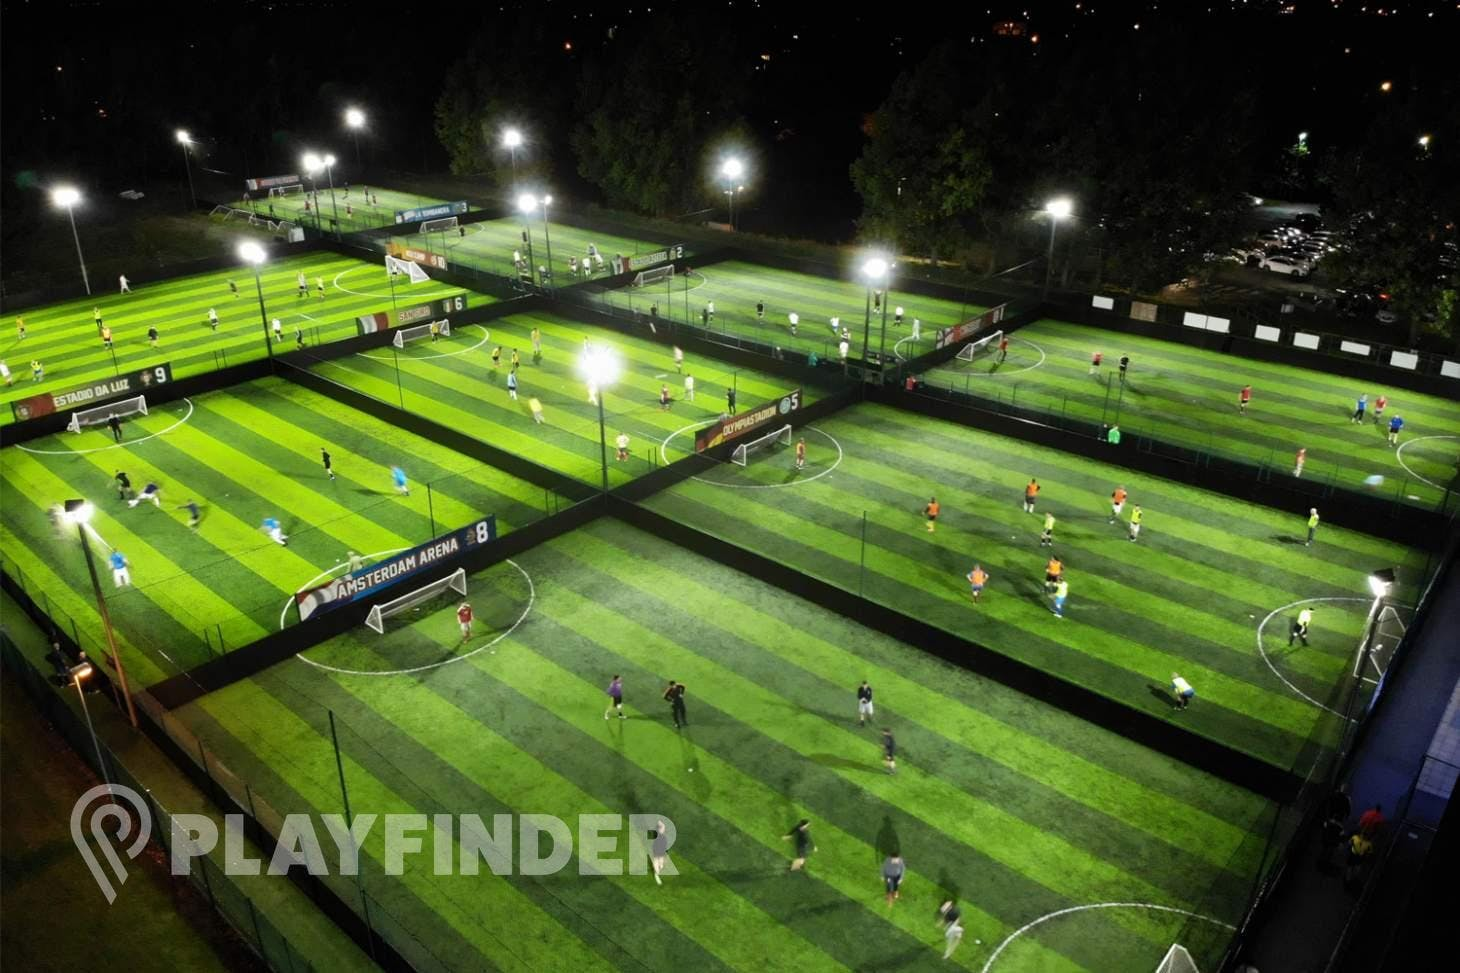 Goals Chingford 7 a side | 3G Astroturf football pitch